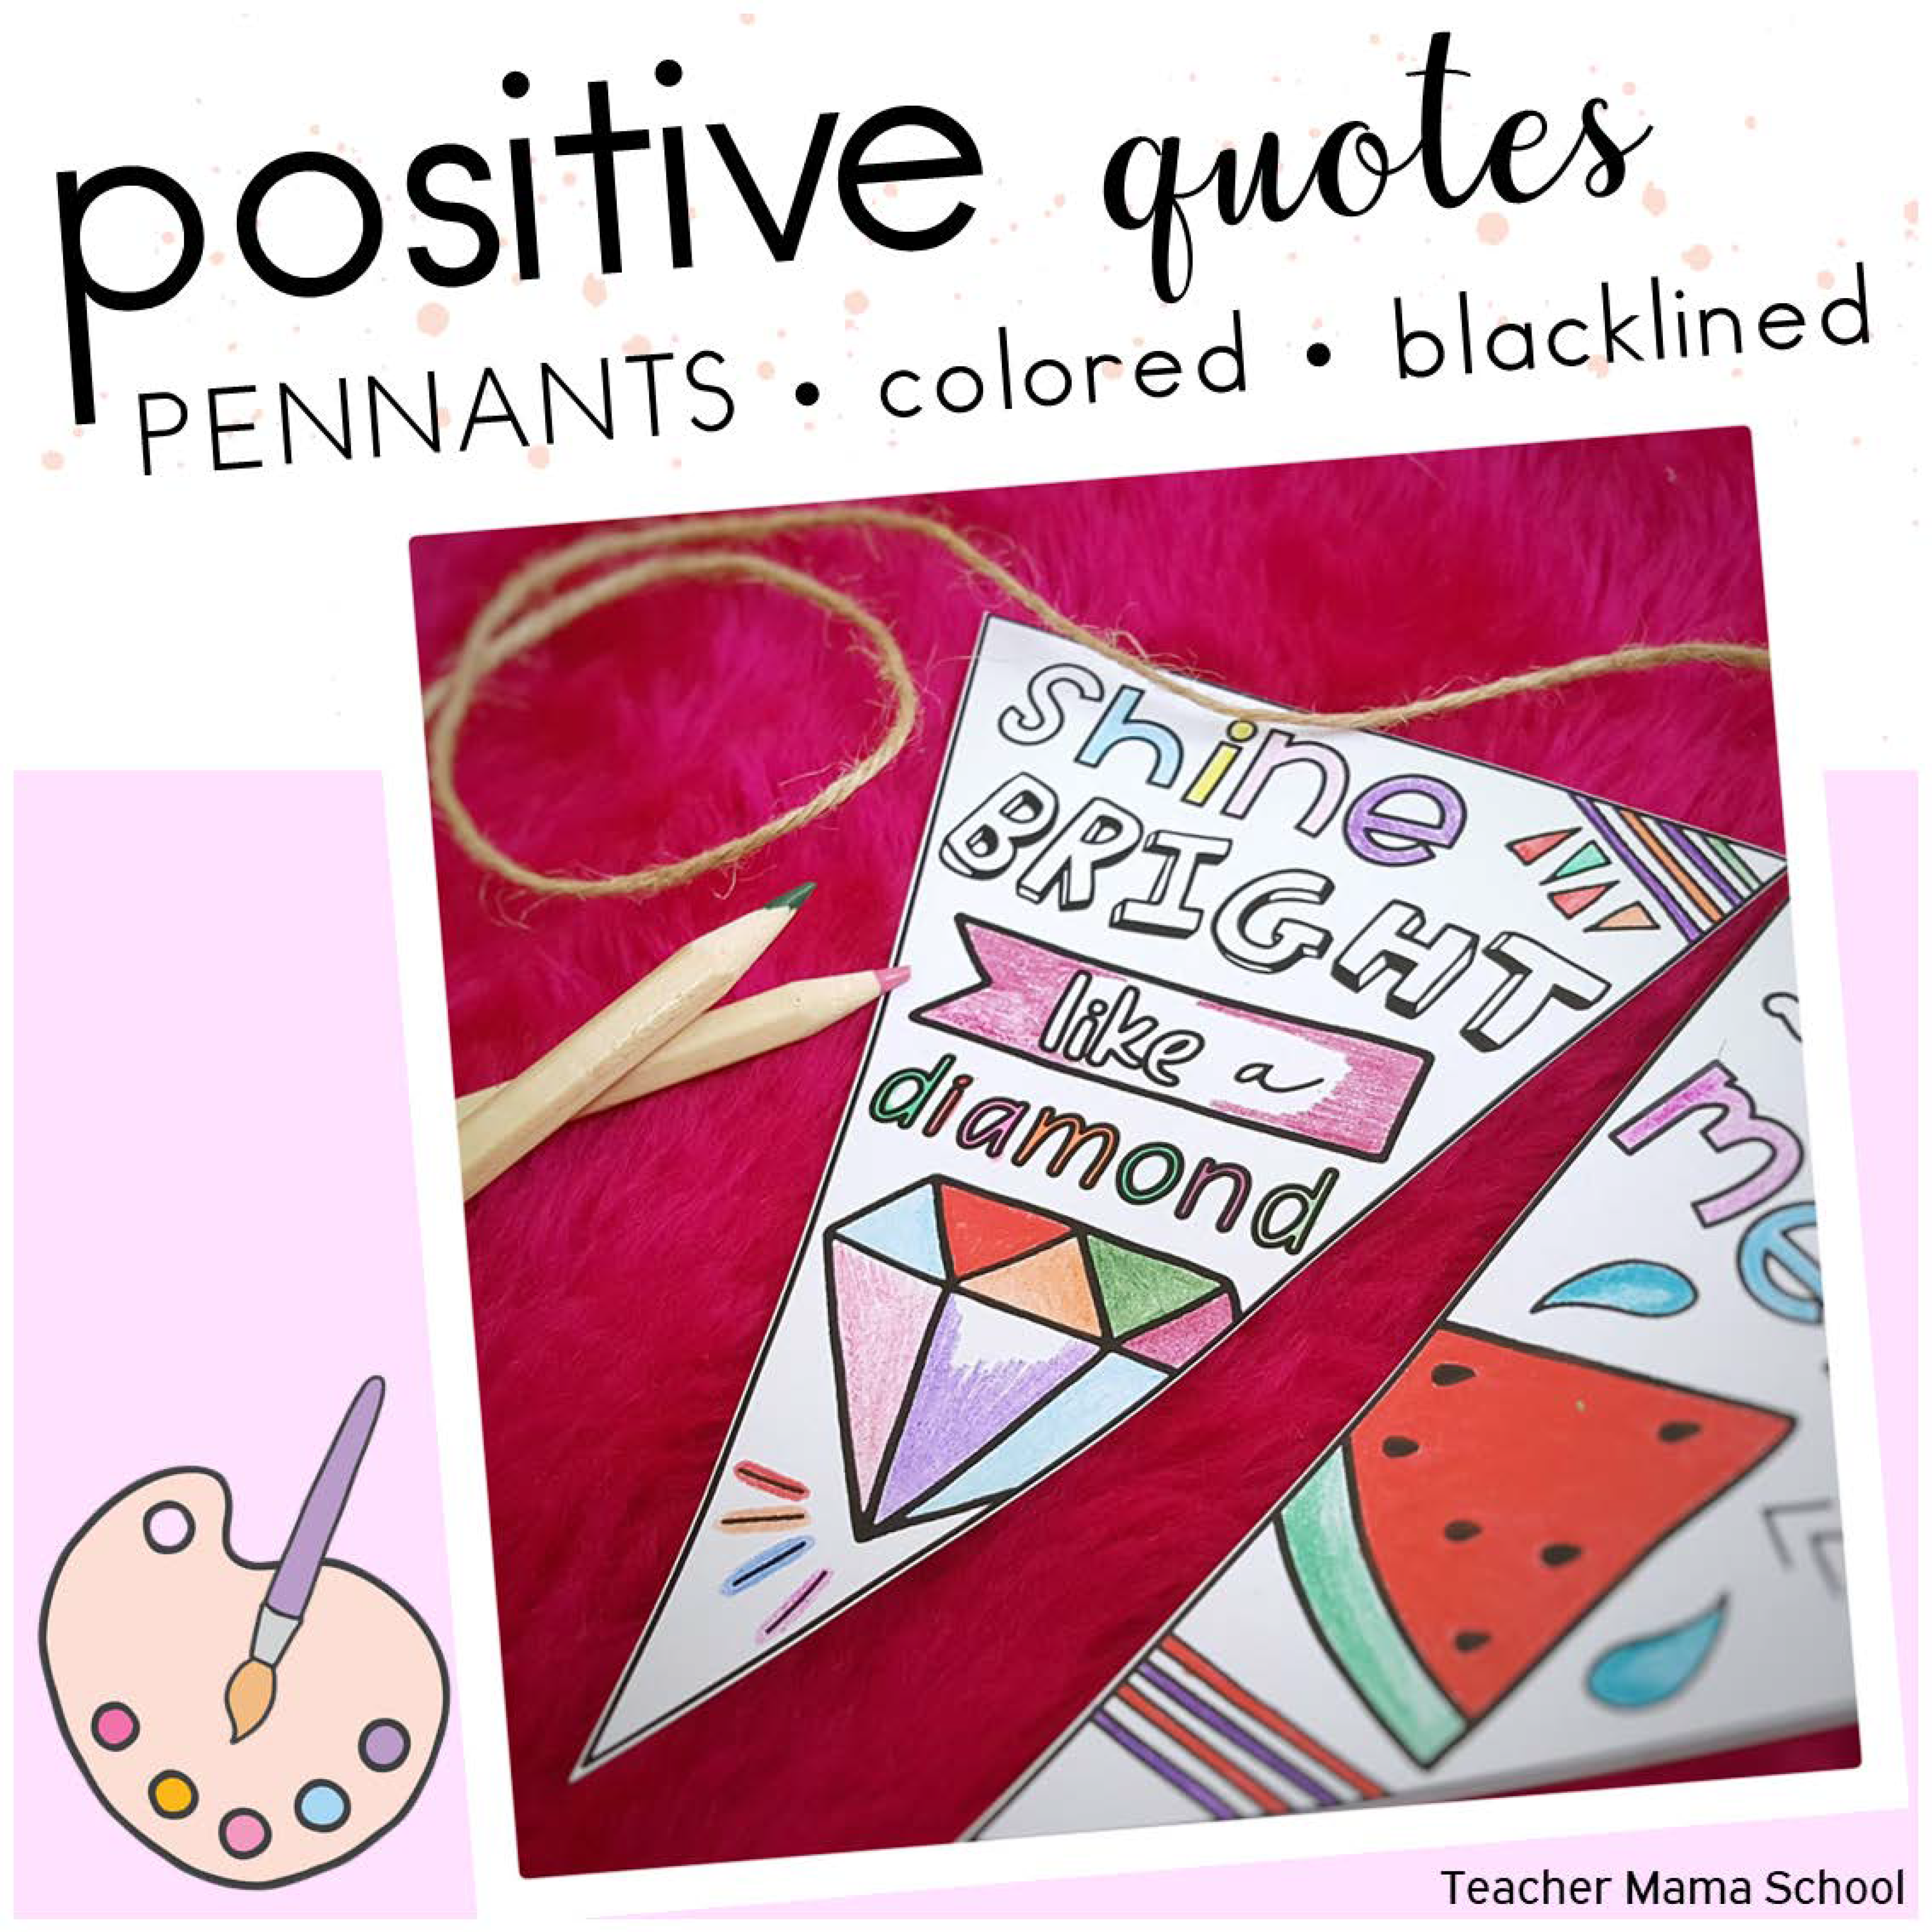 Quotes Coloring Pennants Colored Version_Page_01